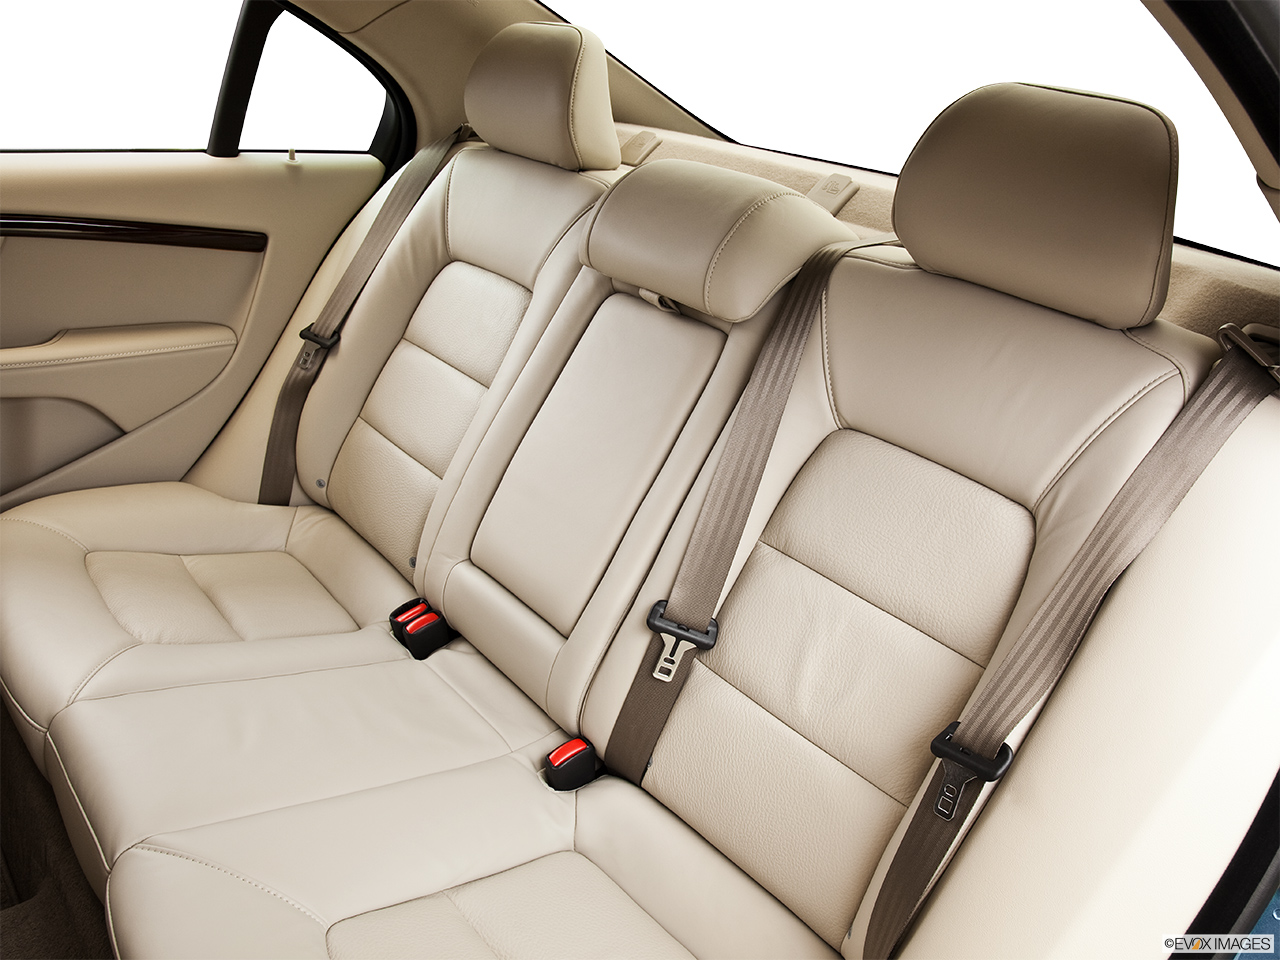 2014 Volvo S80 T6 AWD Platinum Rear seats from Drivers Side.